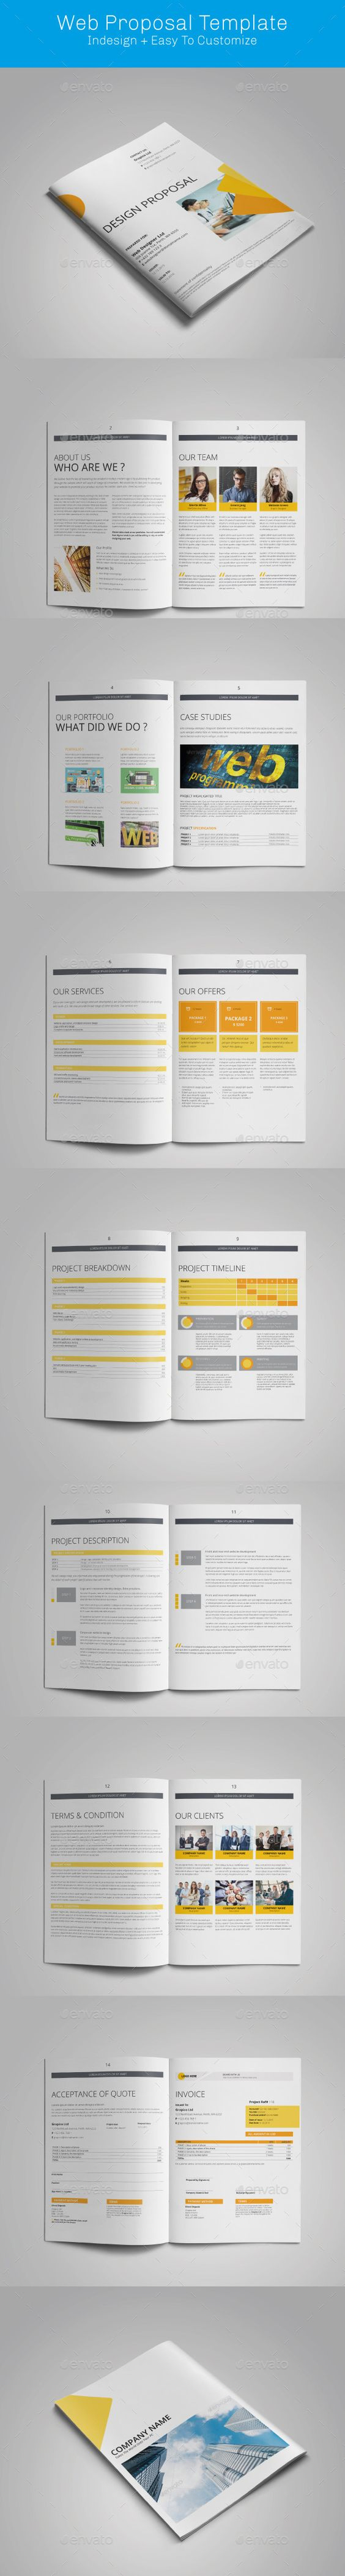 Web Design Proposal Template - Proposals & Invoices Stationery